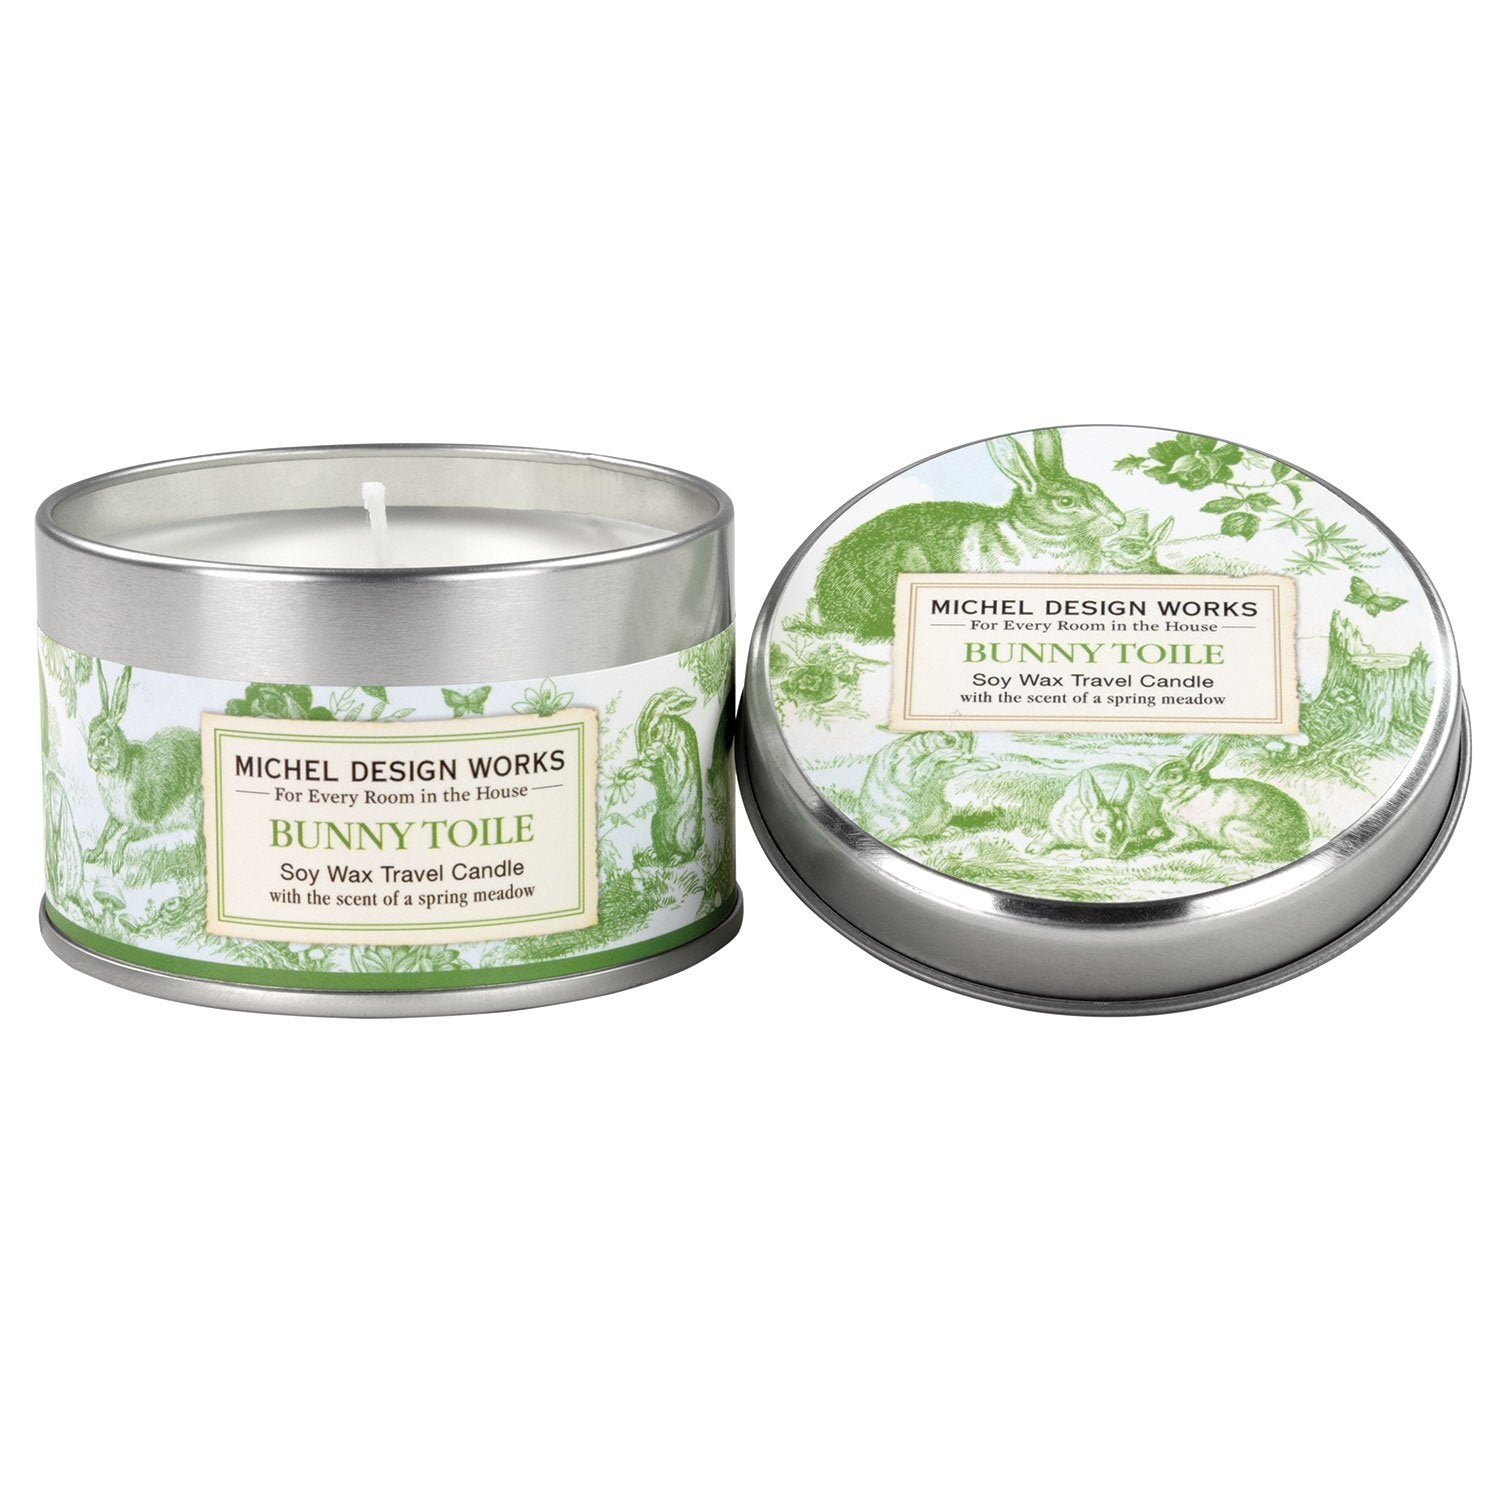 Bunny Toile - Soy Wax Travel Candle